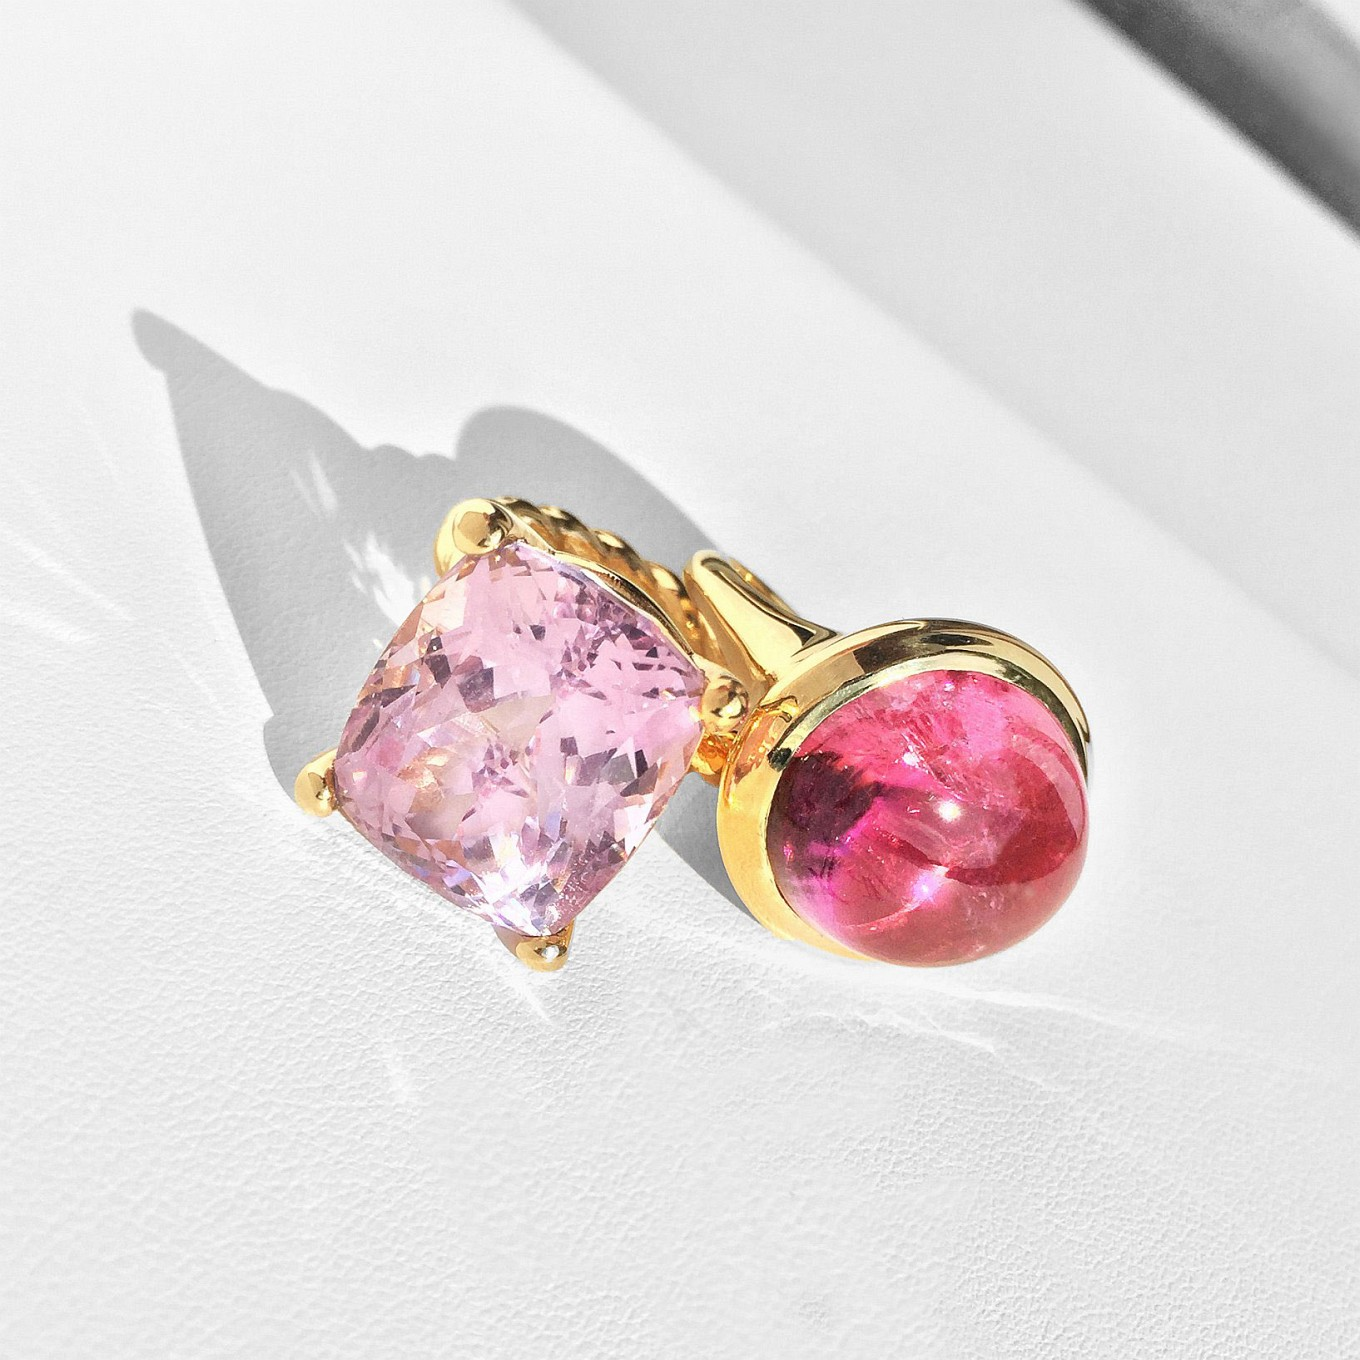 Statement Rings. Pink Tourmaline & Kunzite